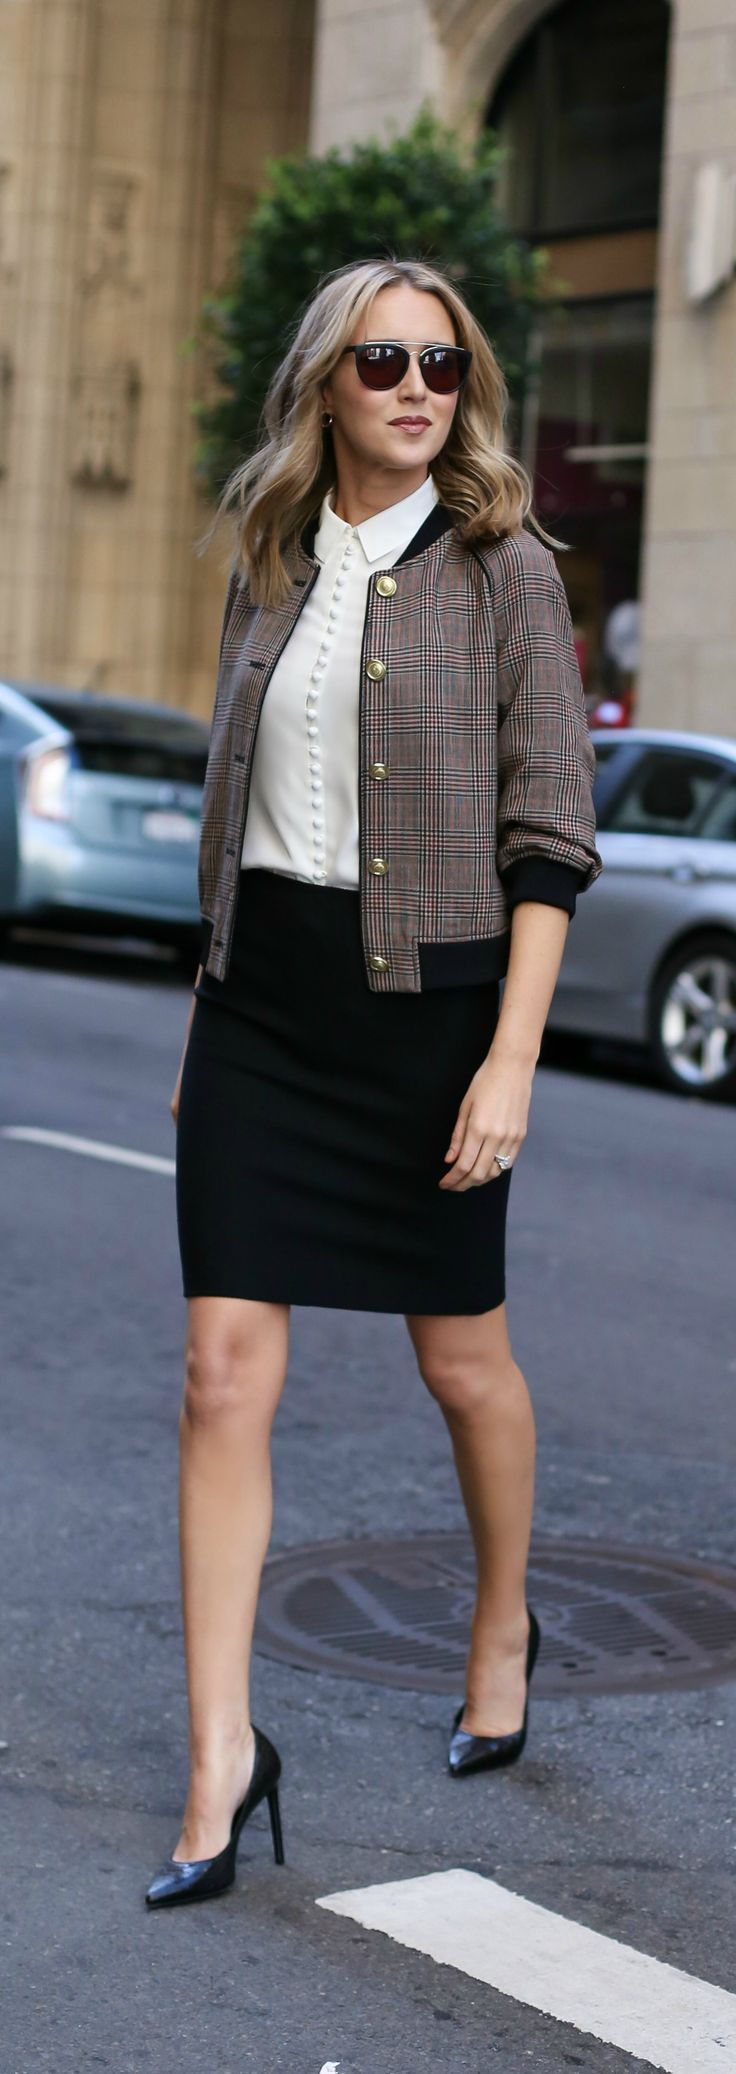 plaid bomber jacket with brass buttons, black pencil skirt, ivory victorian blouse with covered buttons, black sunglasses with gold brow bar, classic pumps